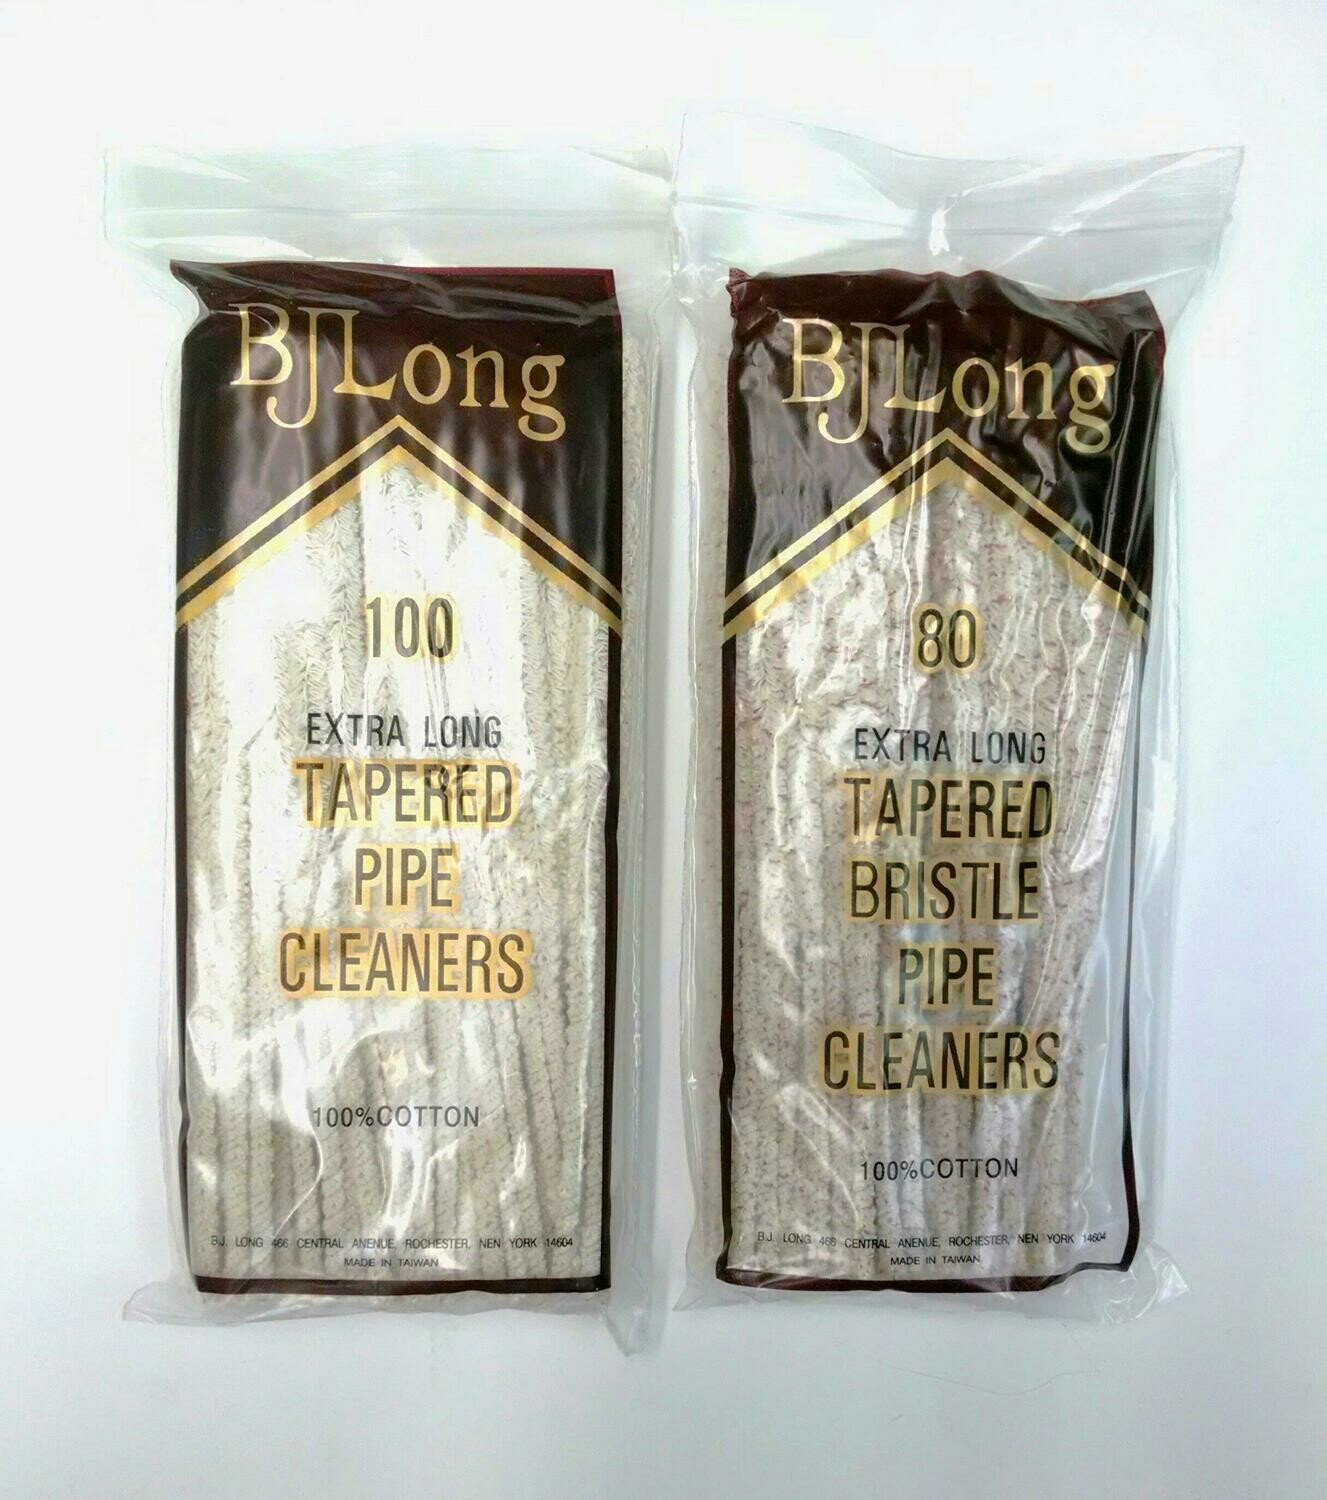 B.J. Long Extra Long Tapered Regular or Bristle Pipe Cleaners